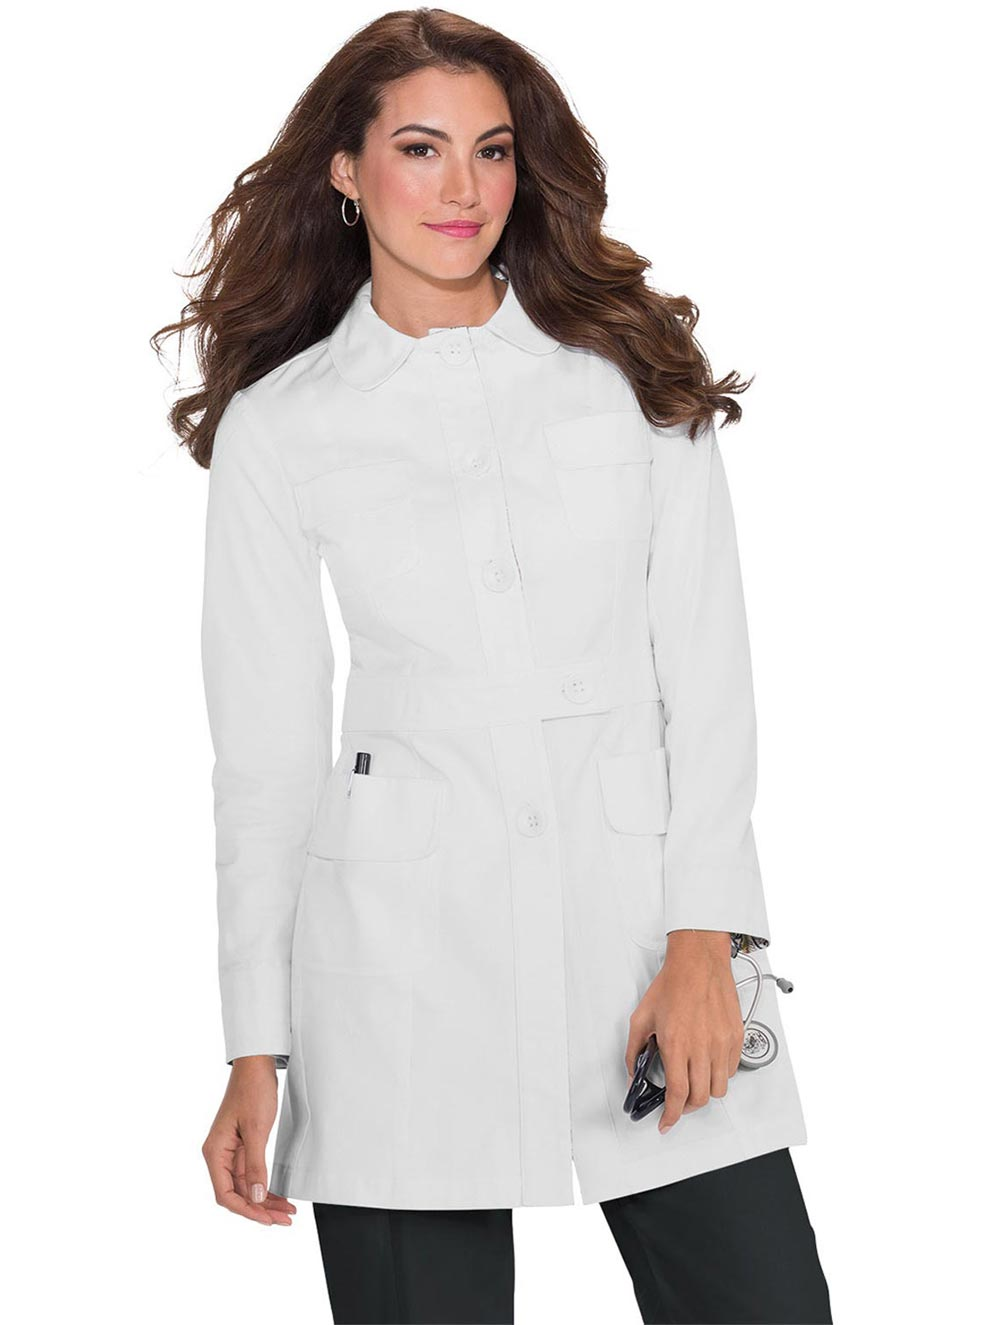 'Geneva' Lab Coat